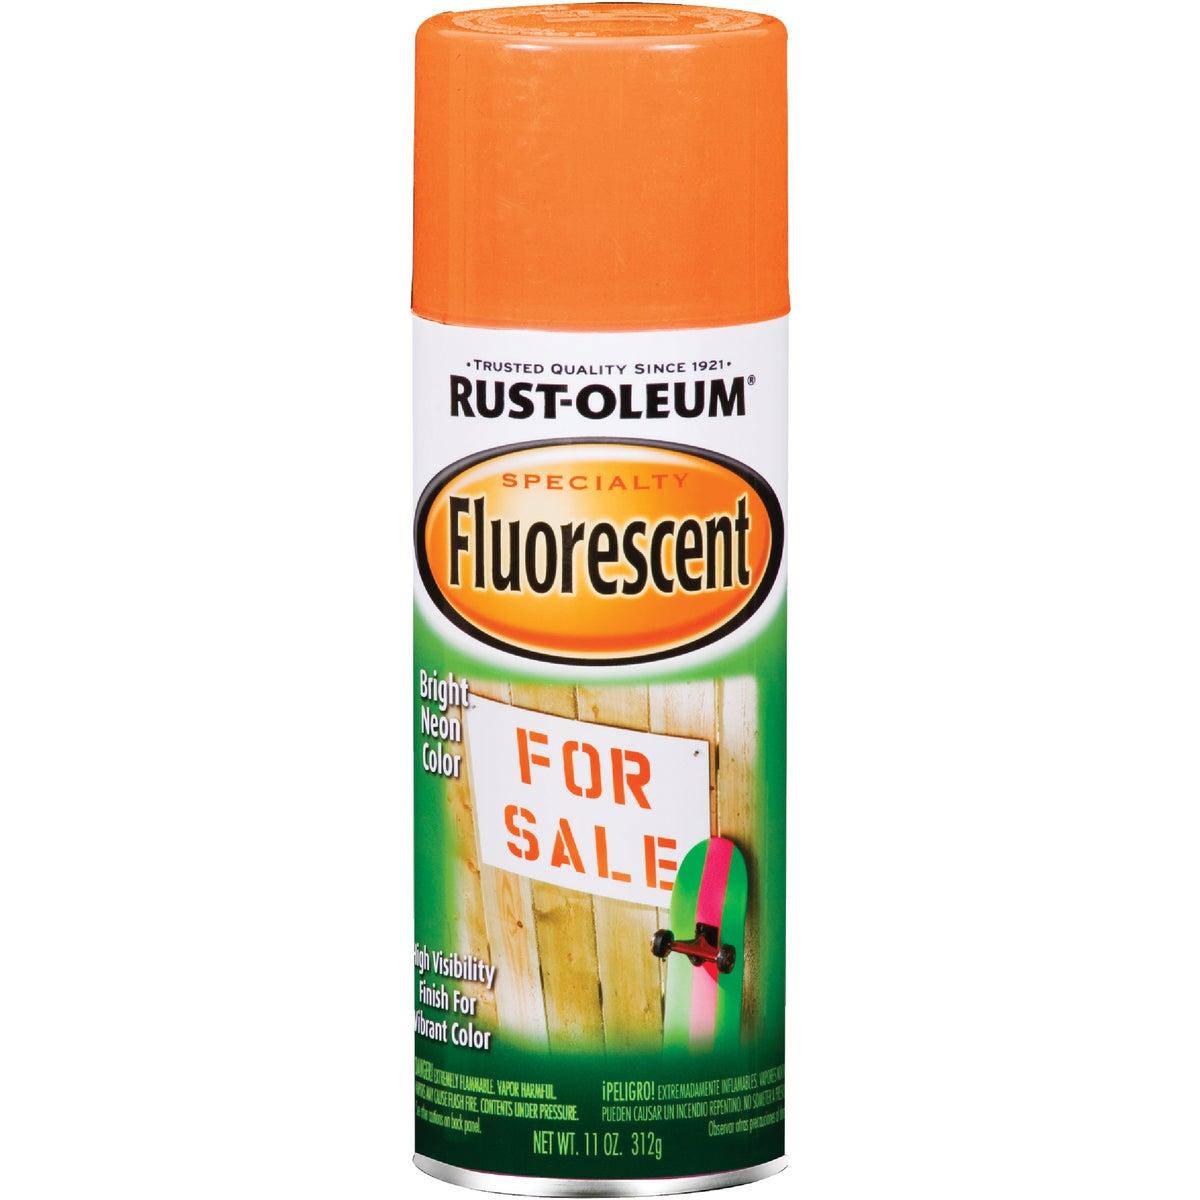 FLRSCNT ORNG SPRAY PAINT - 1954-830 by Rustoleum